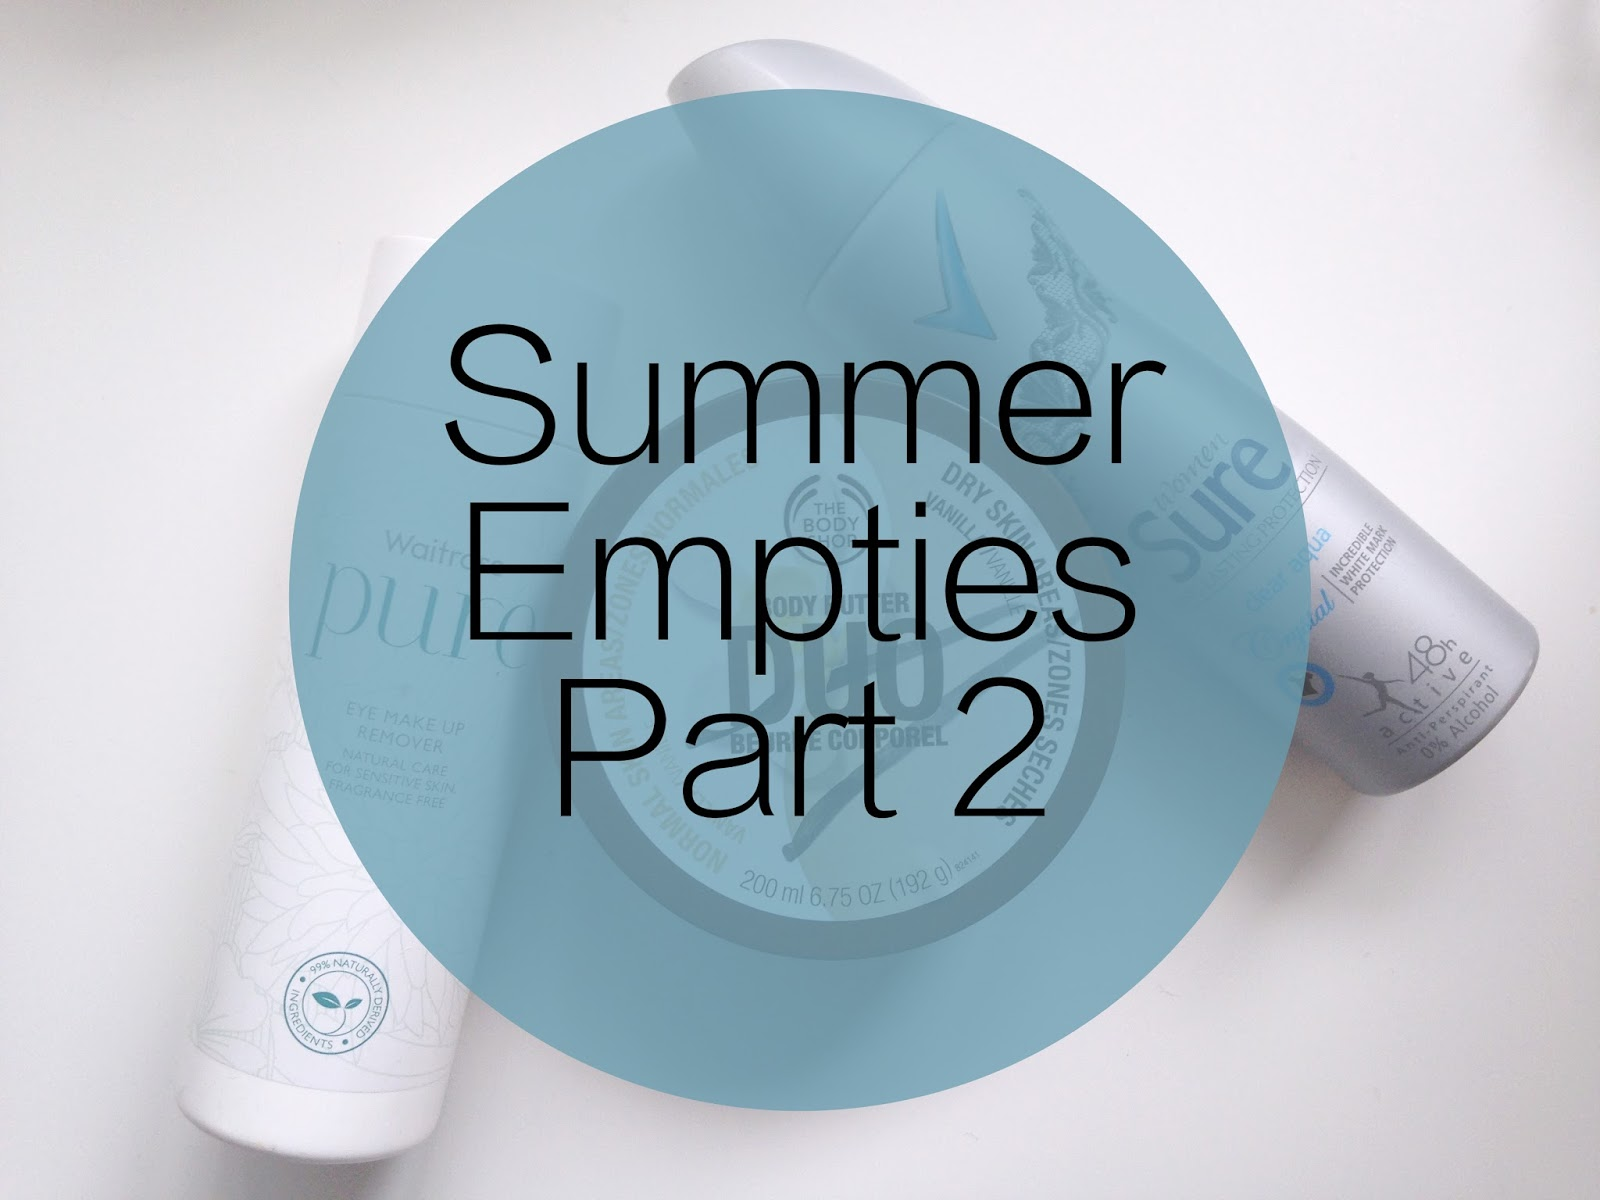 Summer Empties Part 2